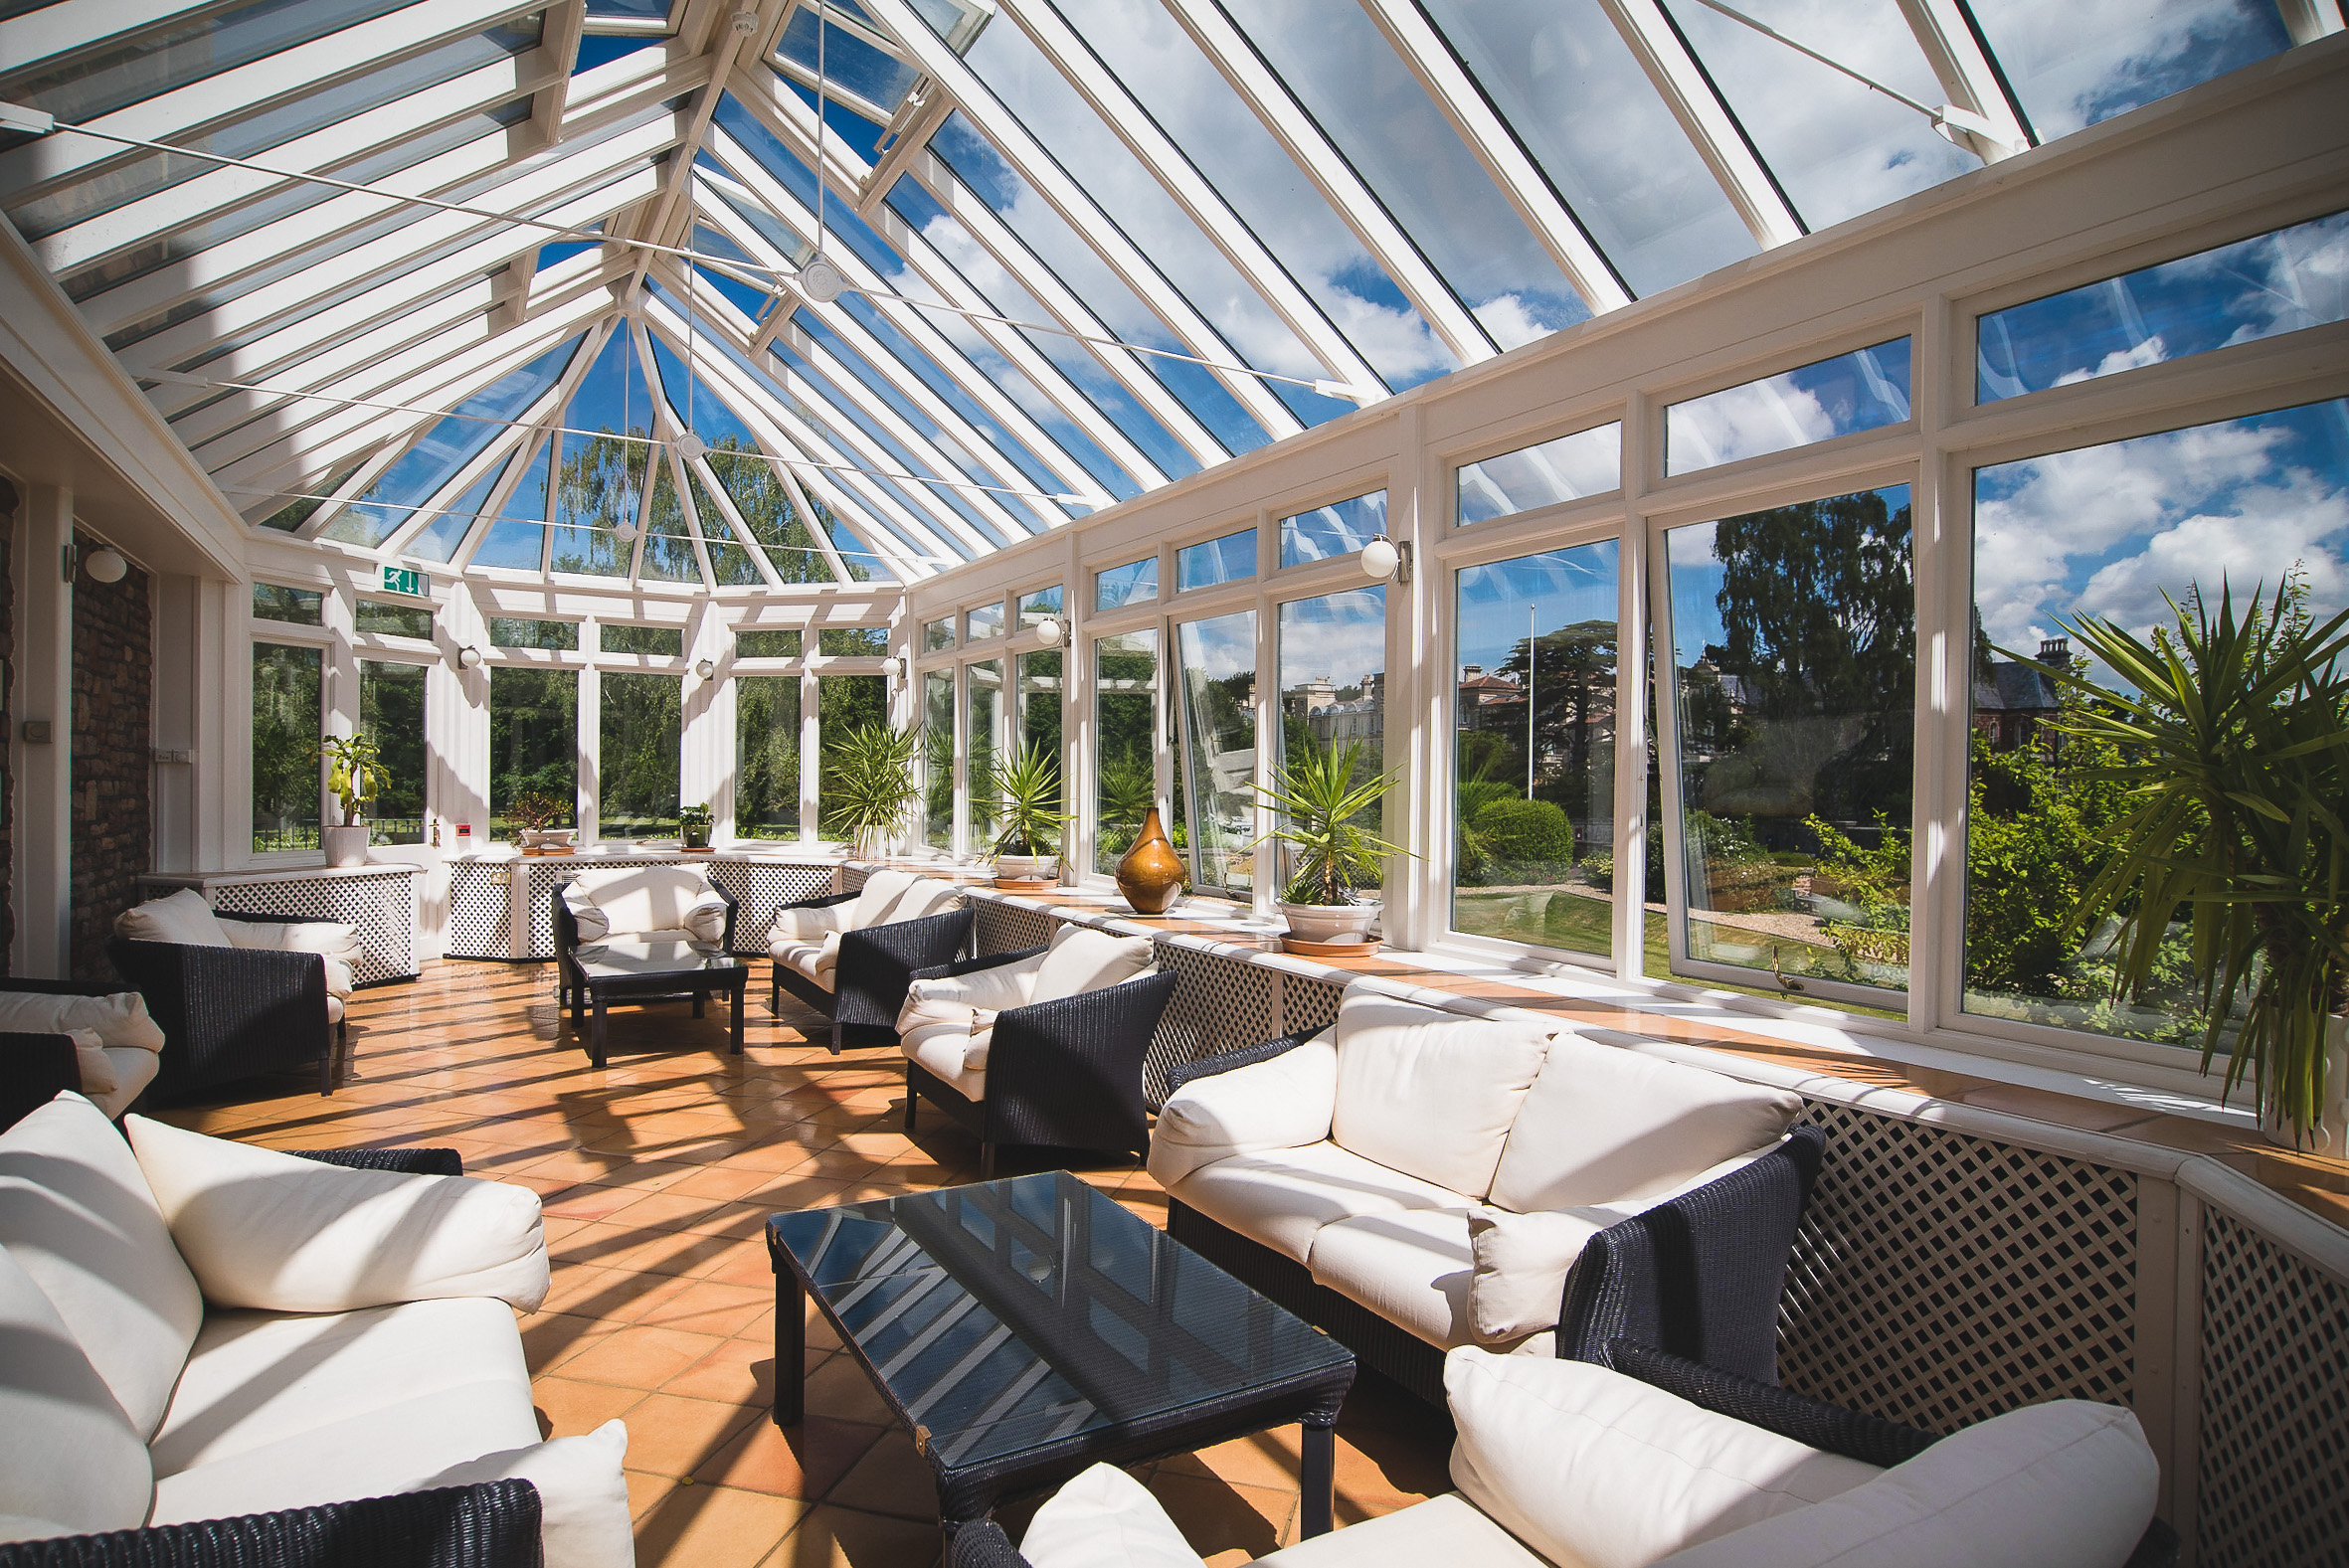 The Mansion House Conservatory